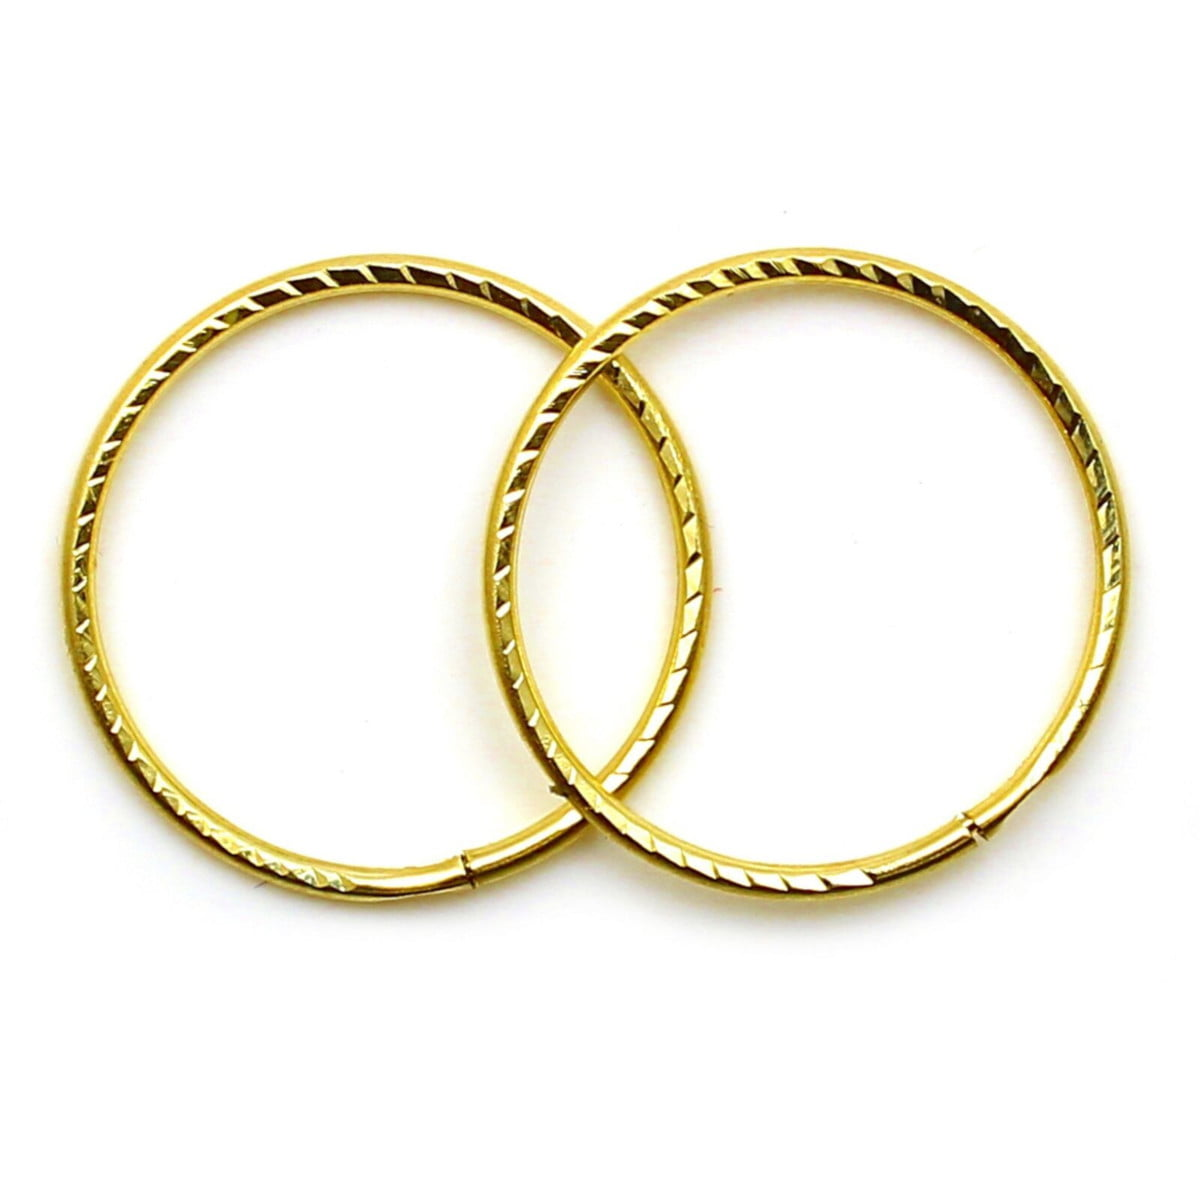 14 mm diamond cut sleeper hoops (1 pair) in 9ct yellow gold